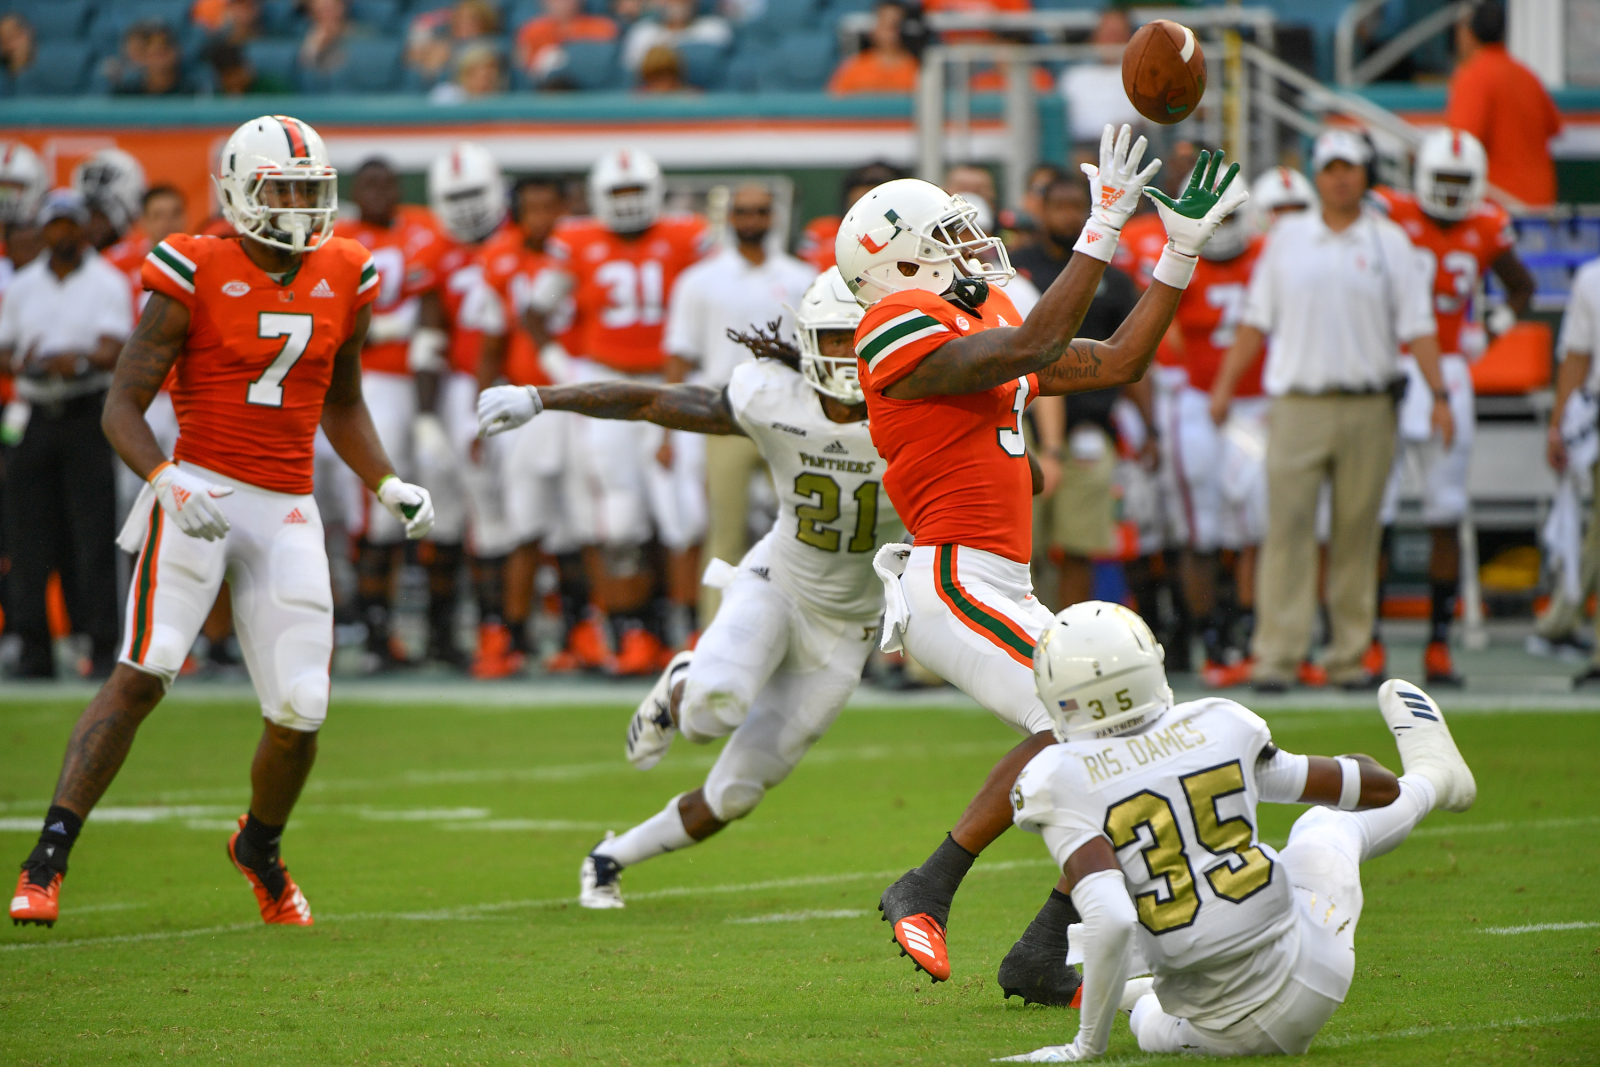 Miami football 2020 projected WR depth chart